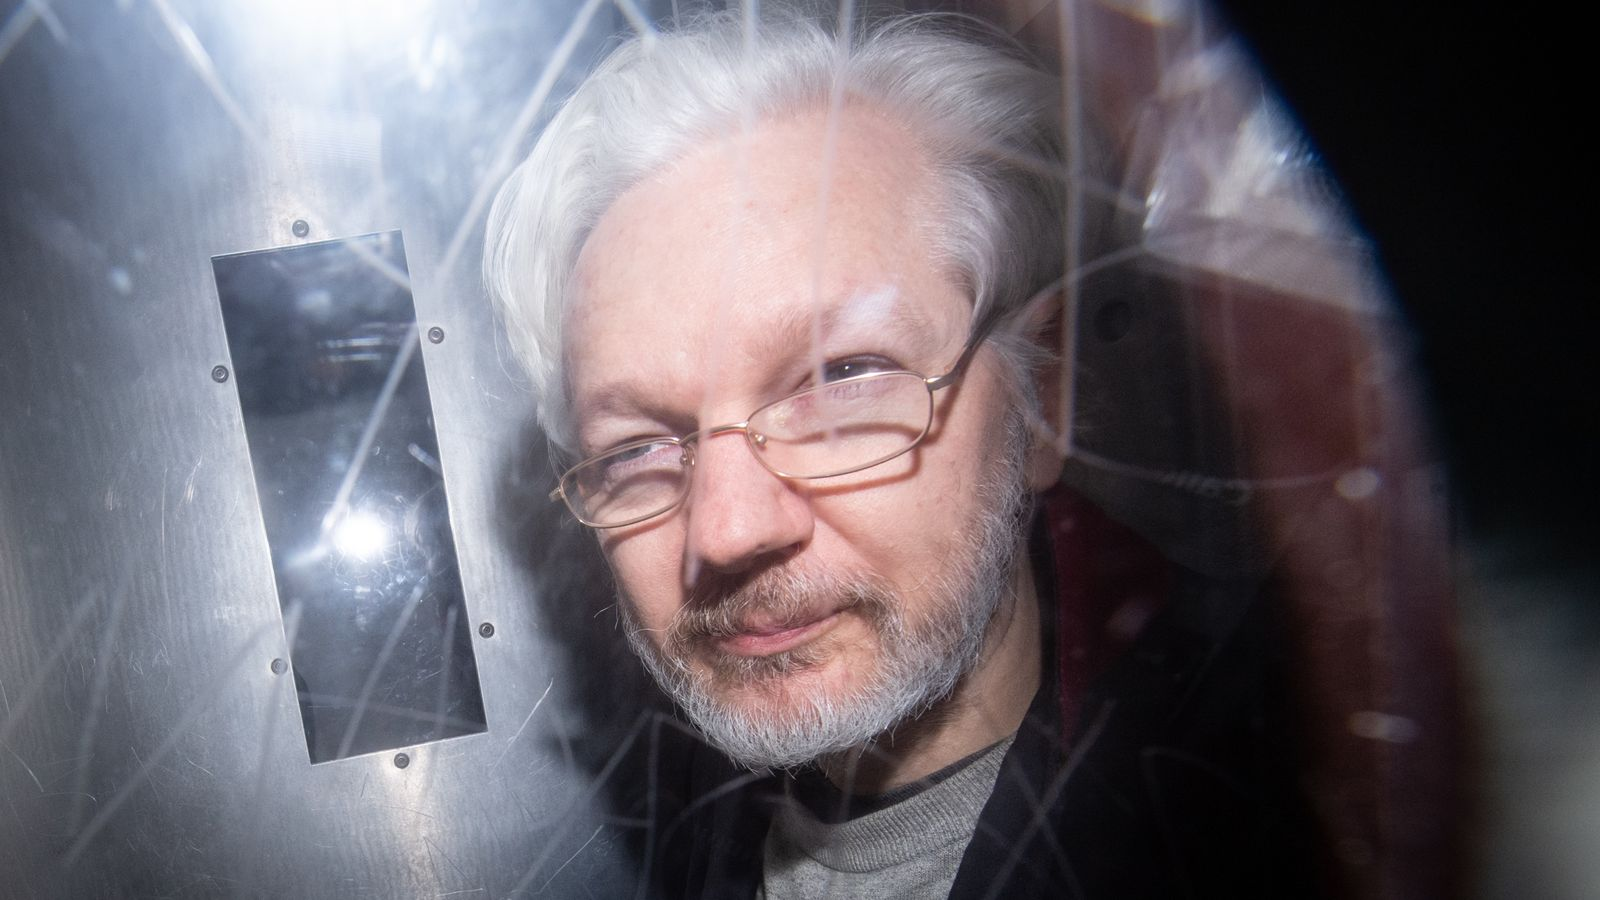 Trump offered Assange pardon if he said Russia not involved in leaked emails, court hears